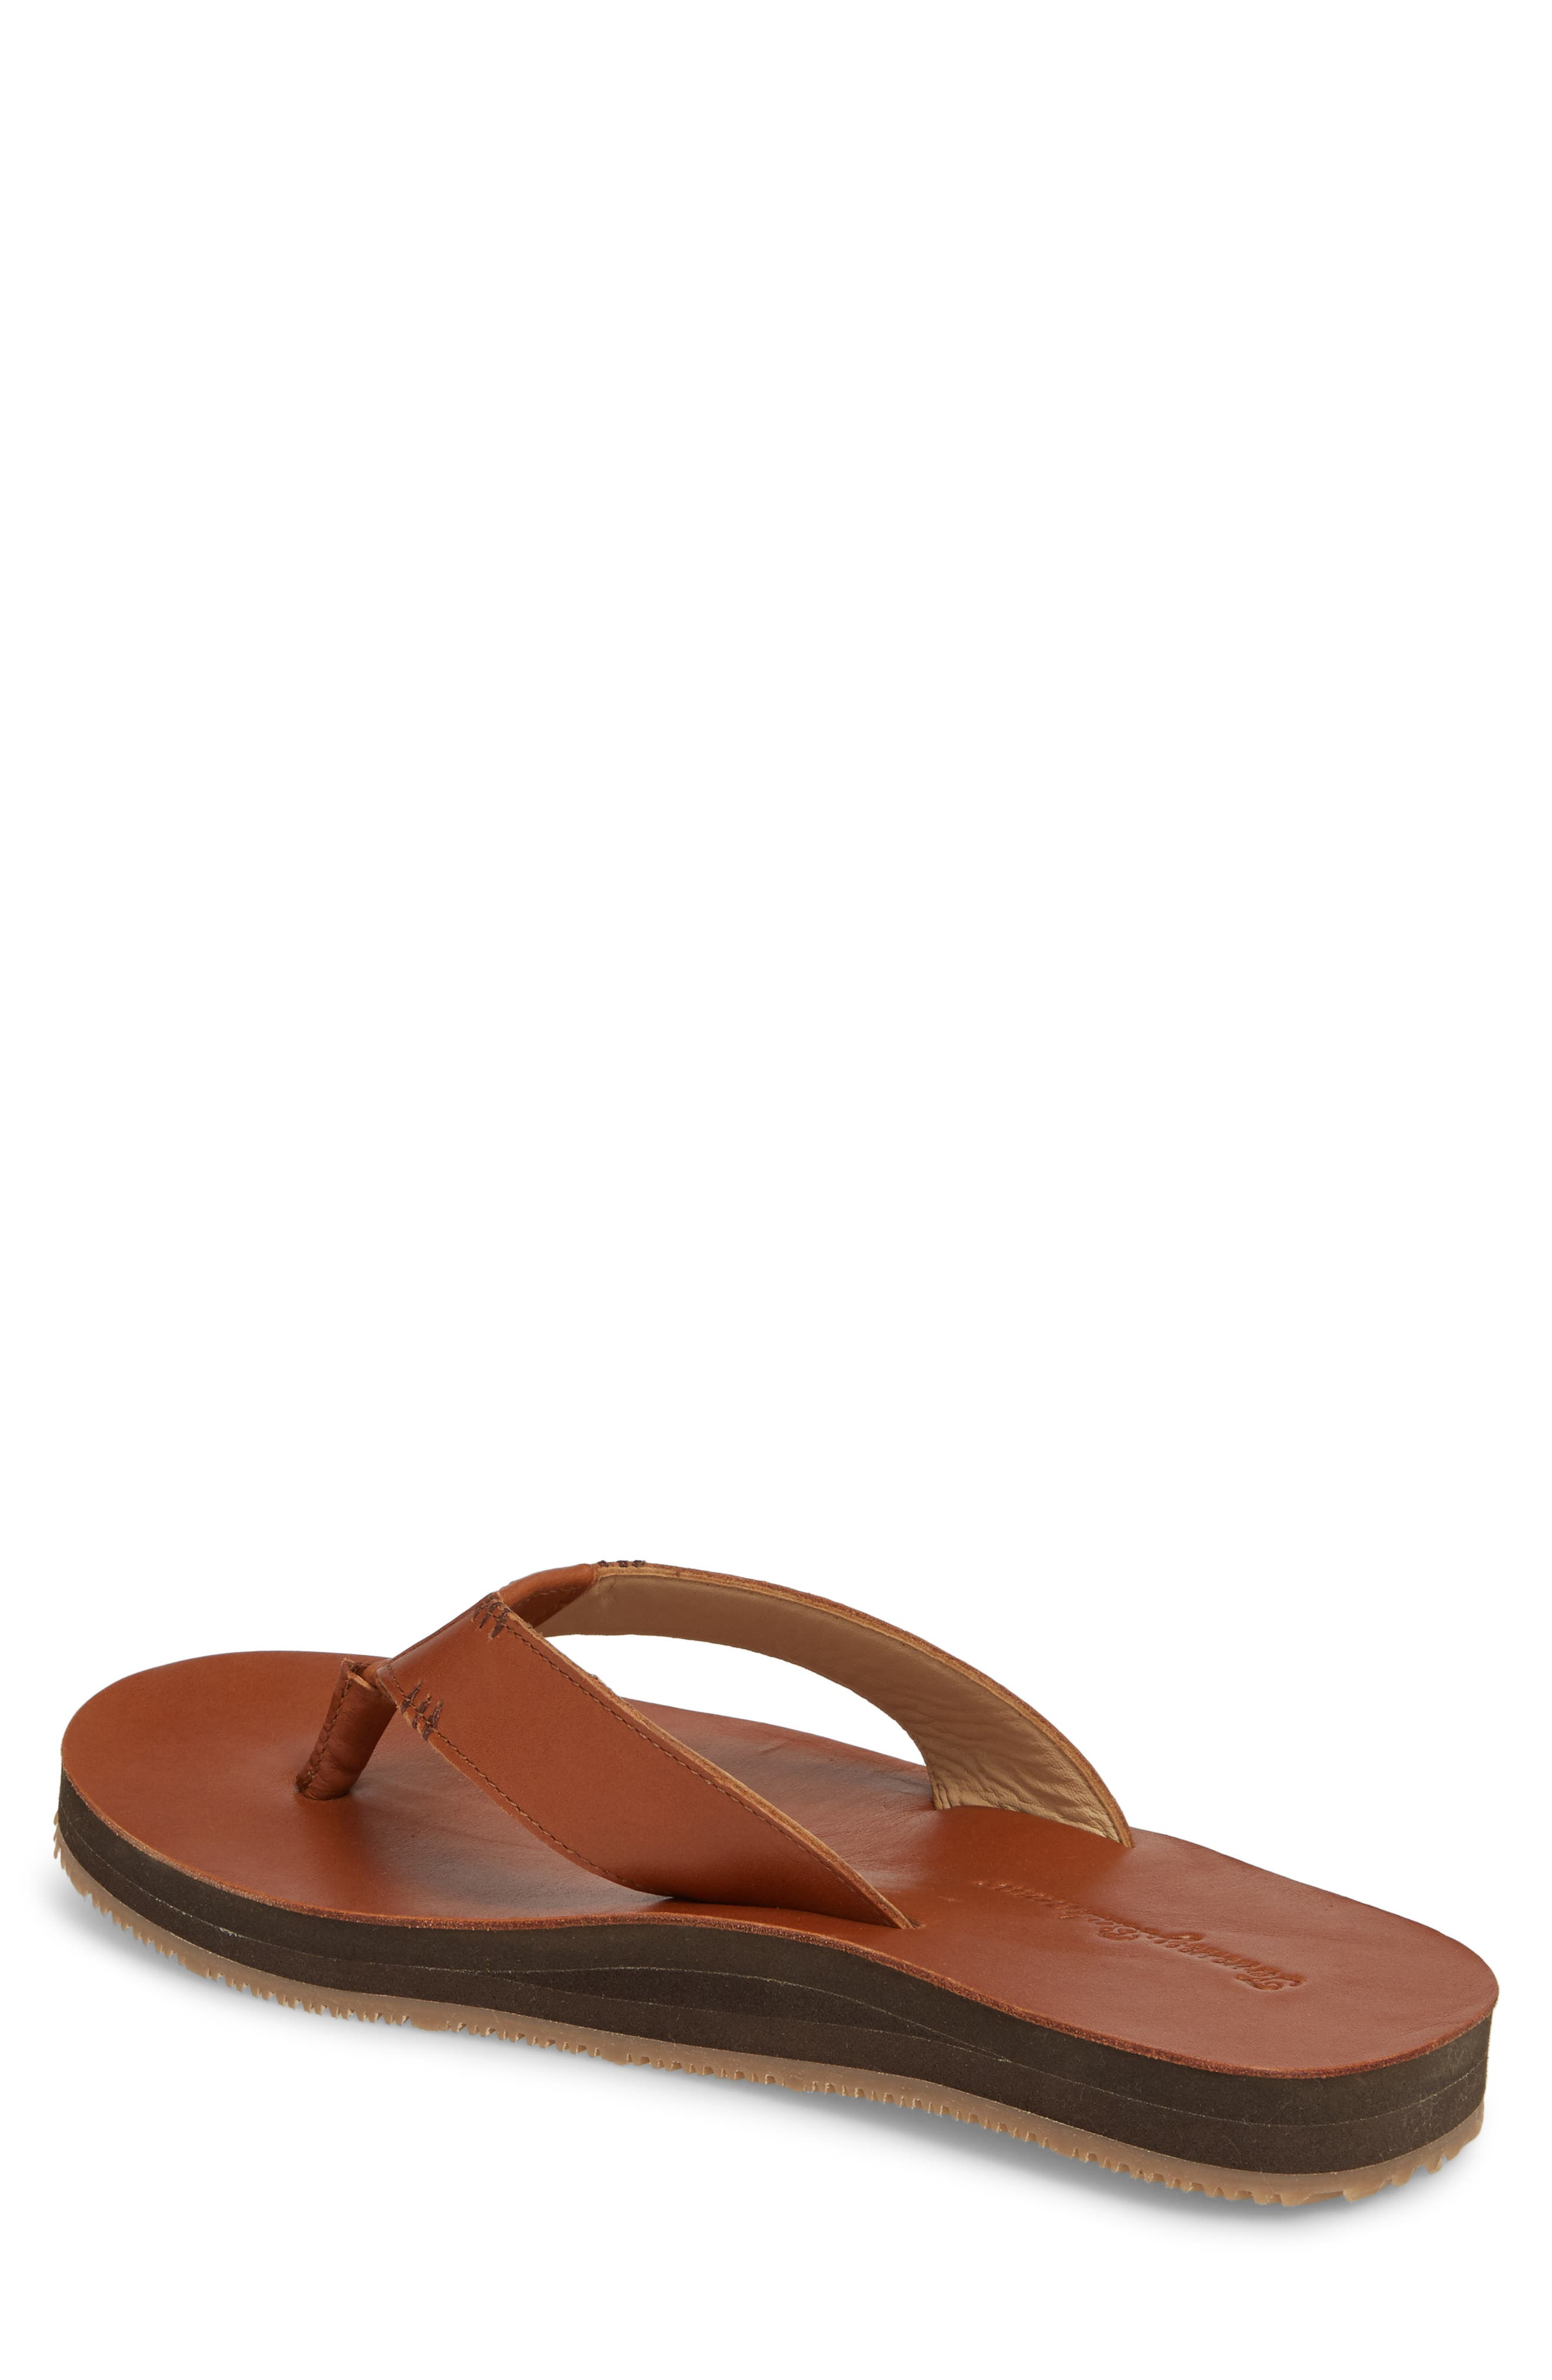 Adderly Flip Flop,                             Alternate thumbnail 2, color,                             Tan Leather